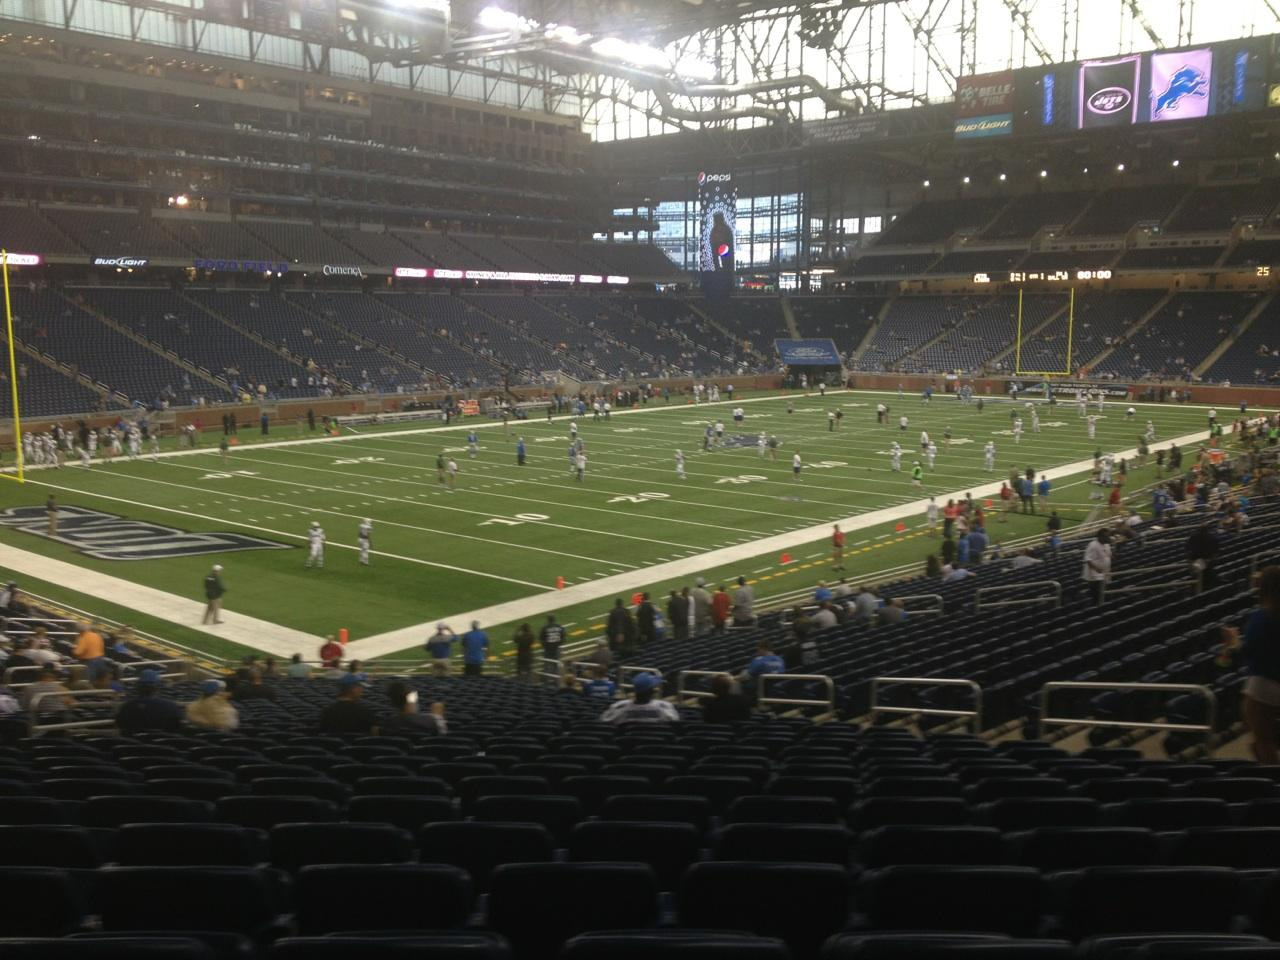 Ford Field Section 121 Row 31 Seat 10